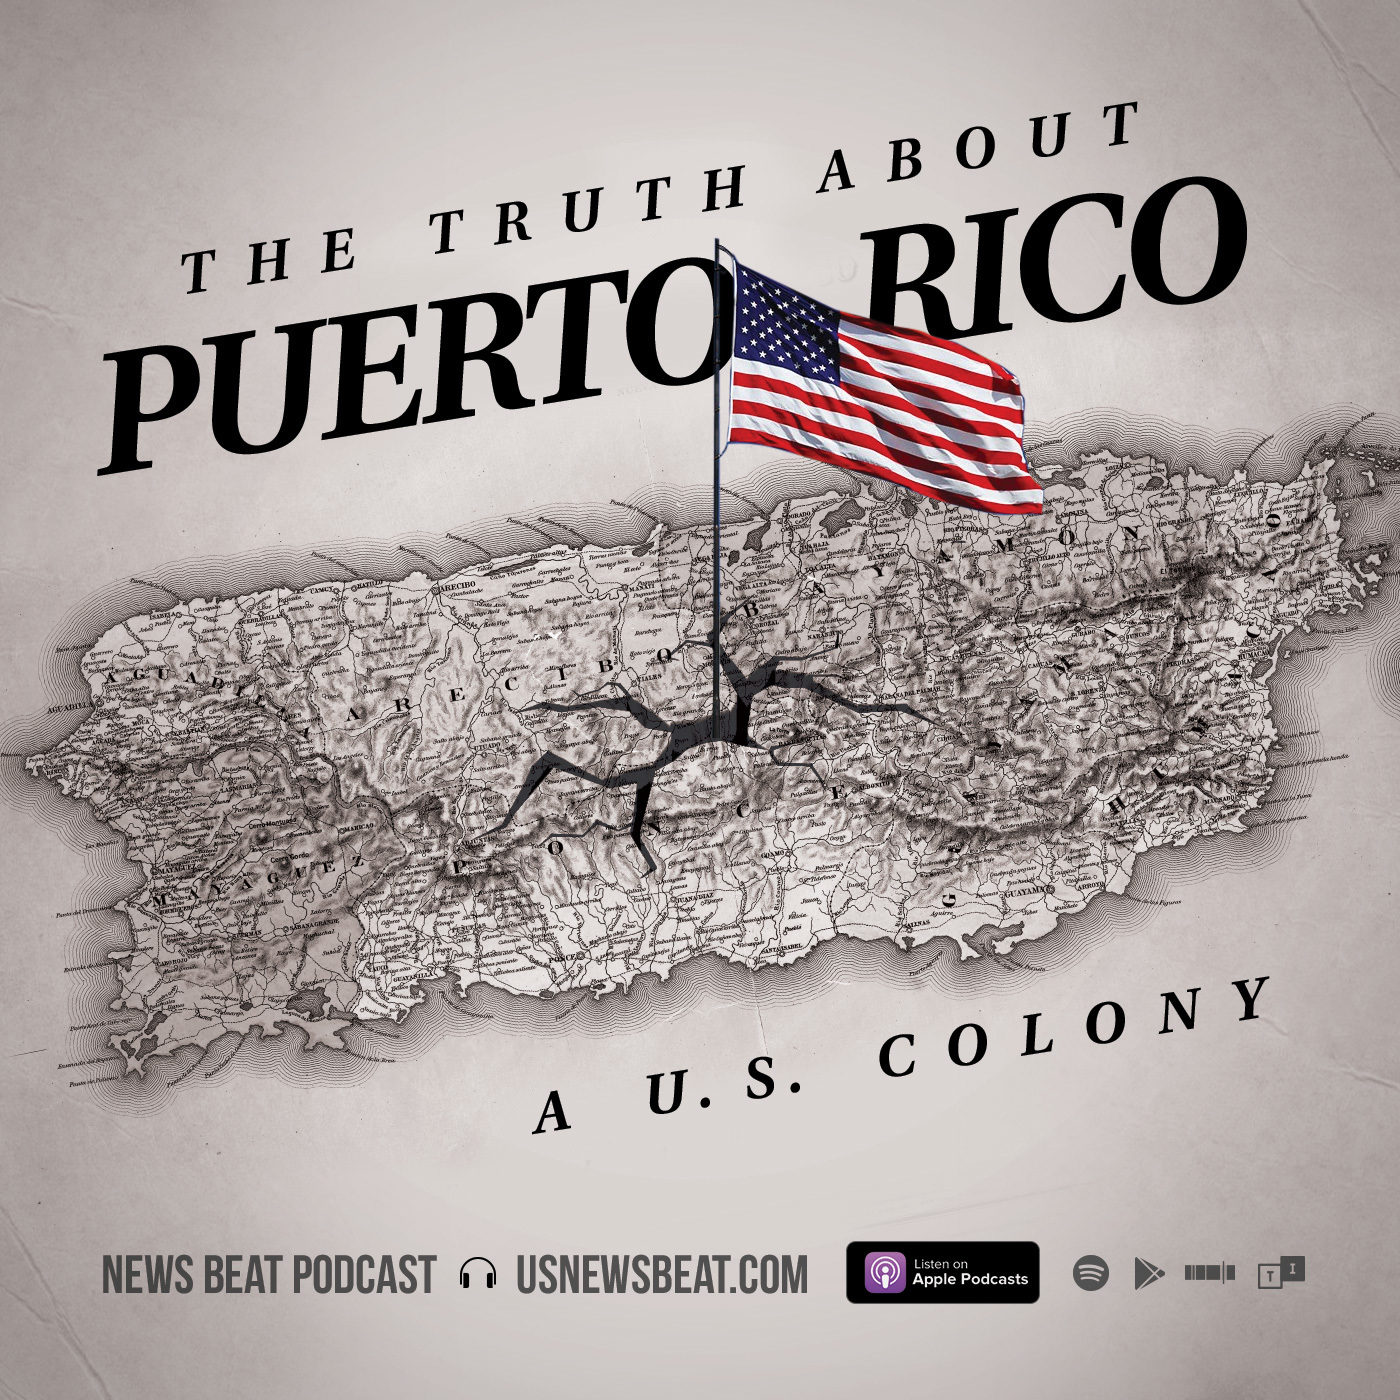 The Truth About Puerto Rico